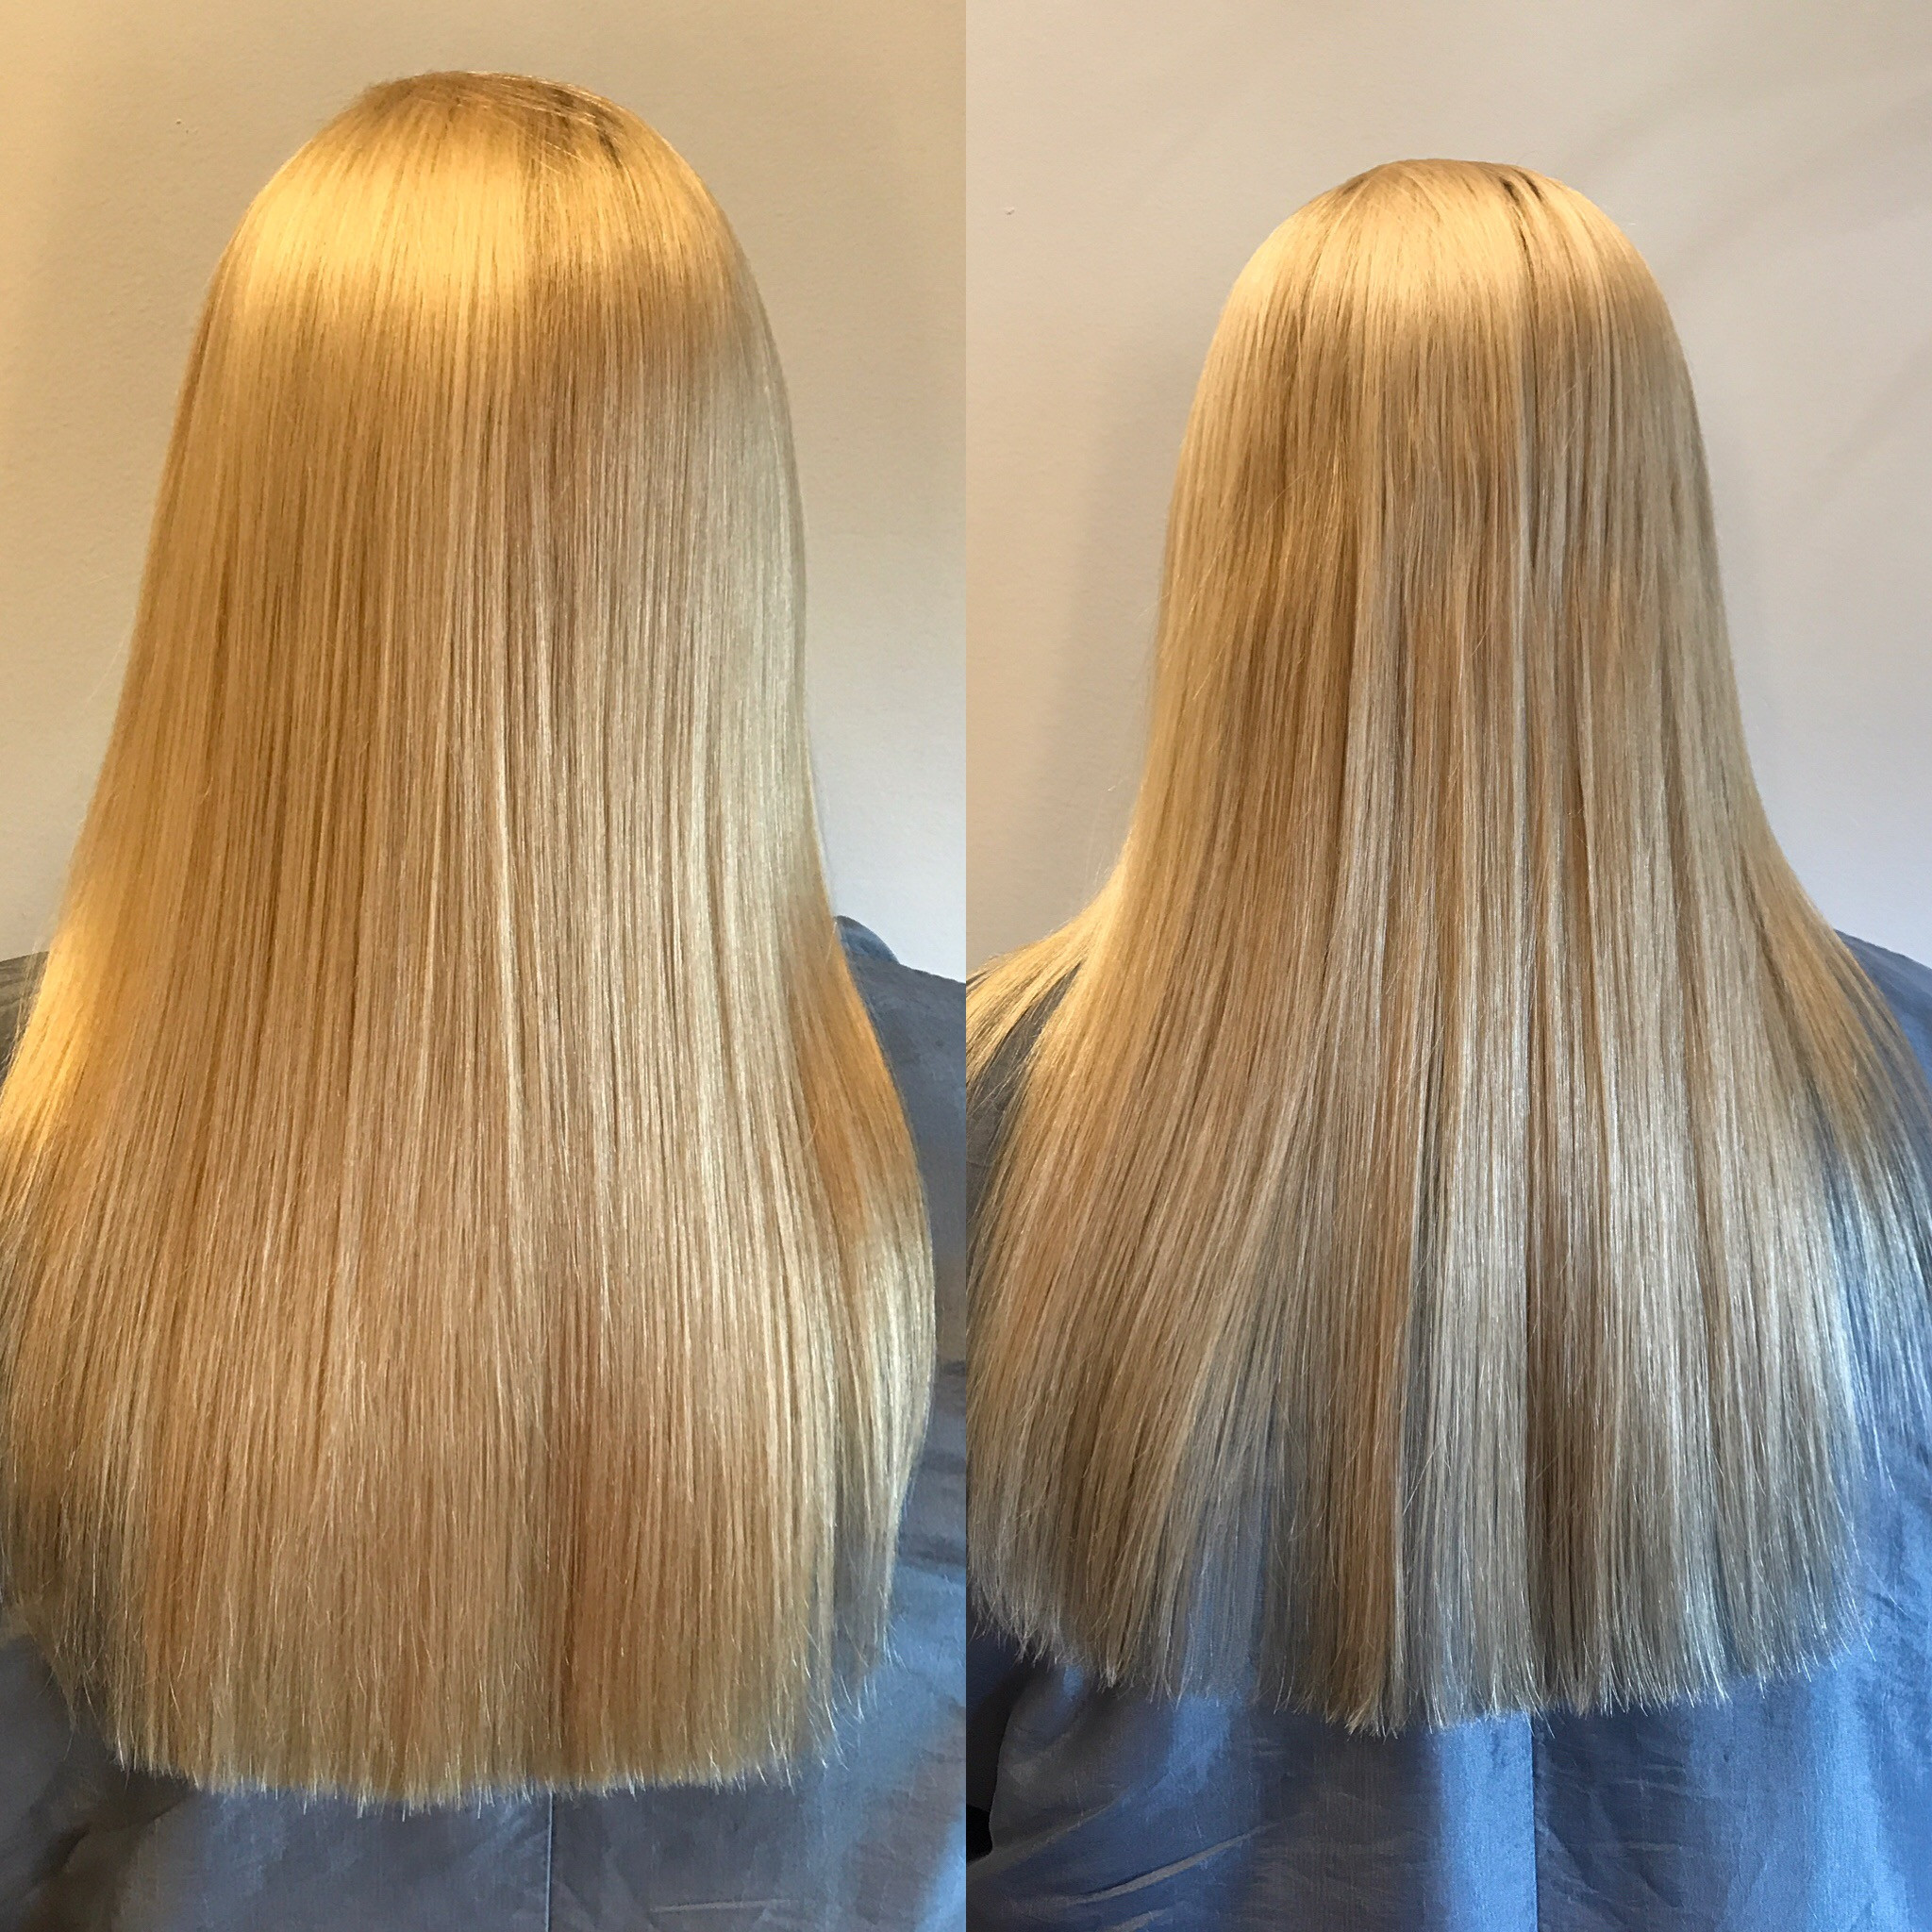 One Pack Of Yvonne Babe Tape In Extensions Equals Instand Fullness